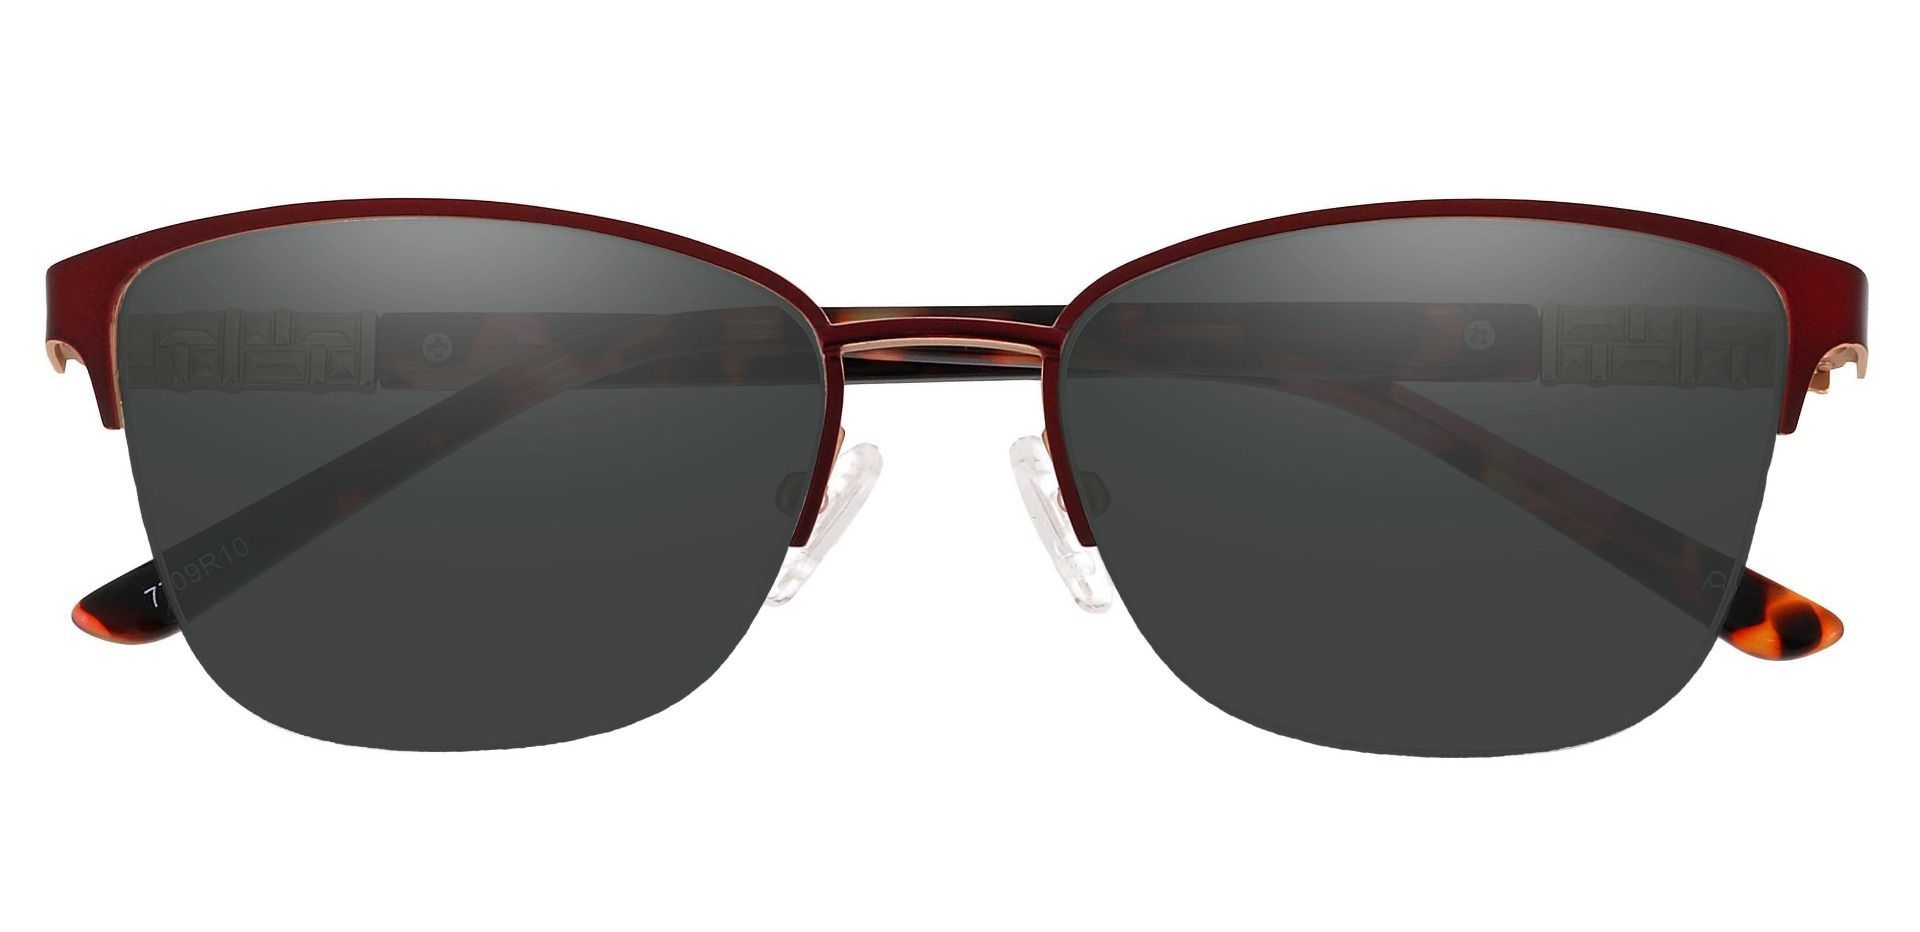 Ballad Cat Eye Lined Bifocal Sunglasses - Red Frame With Gray Lenses